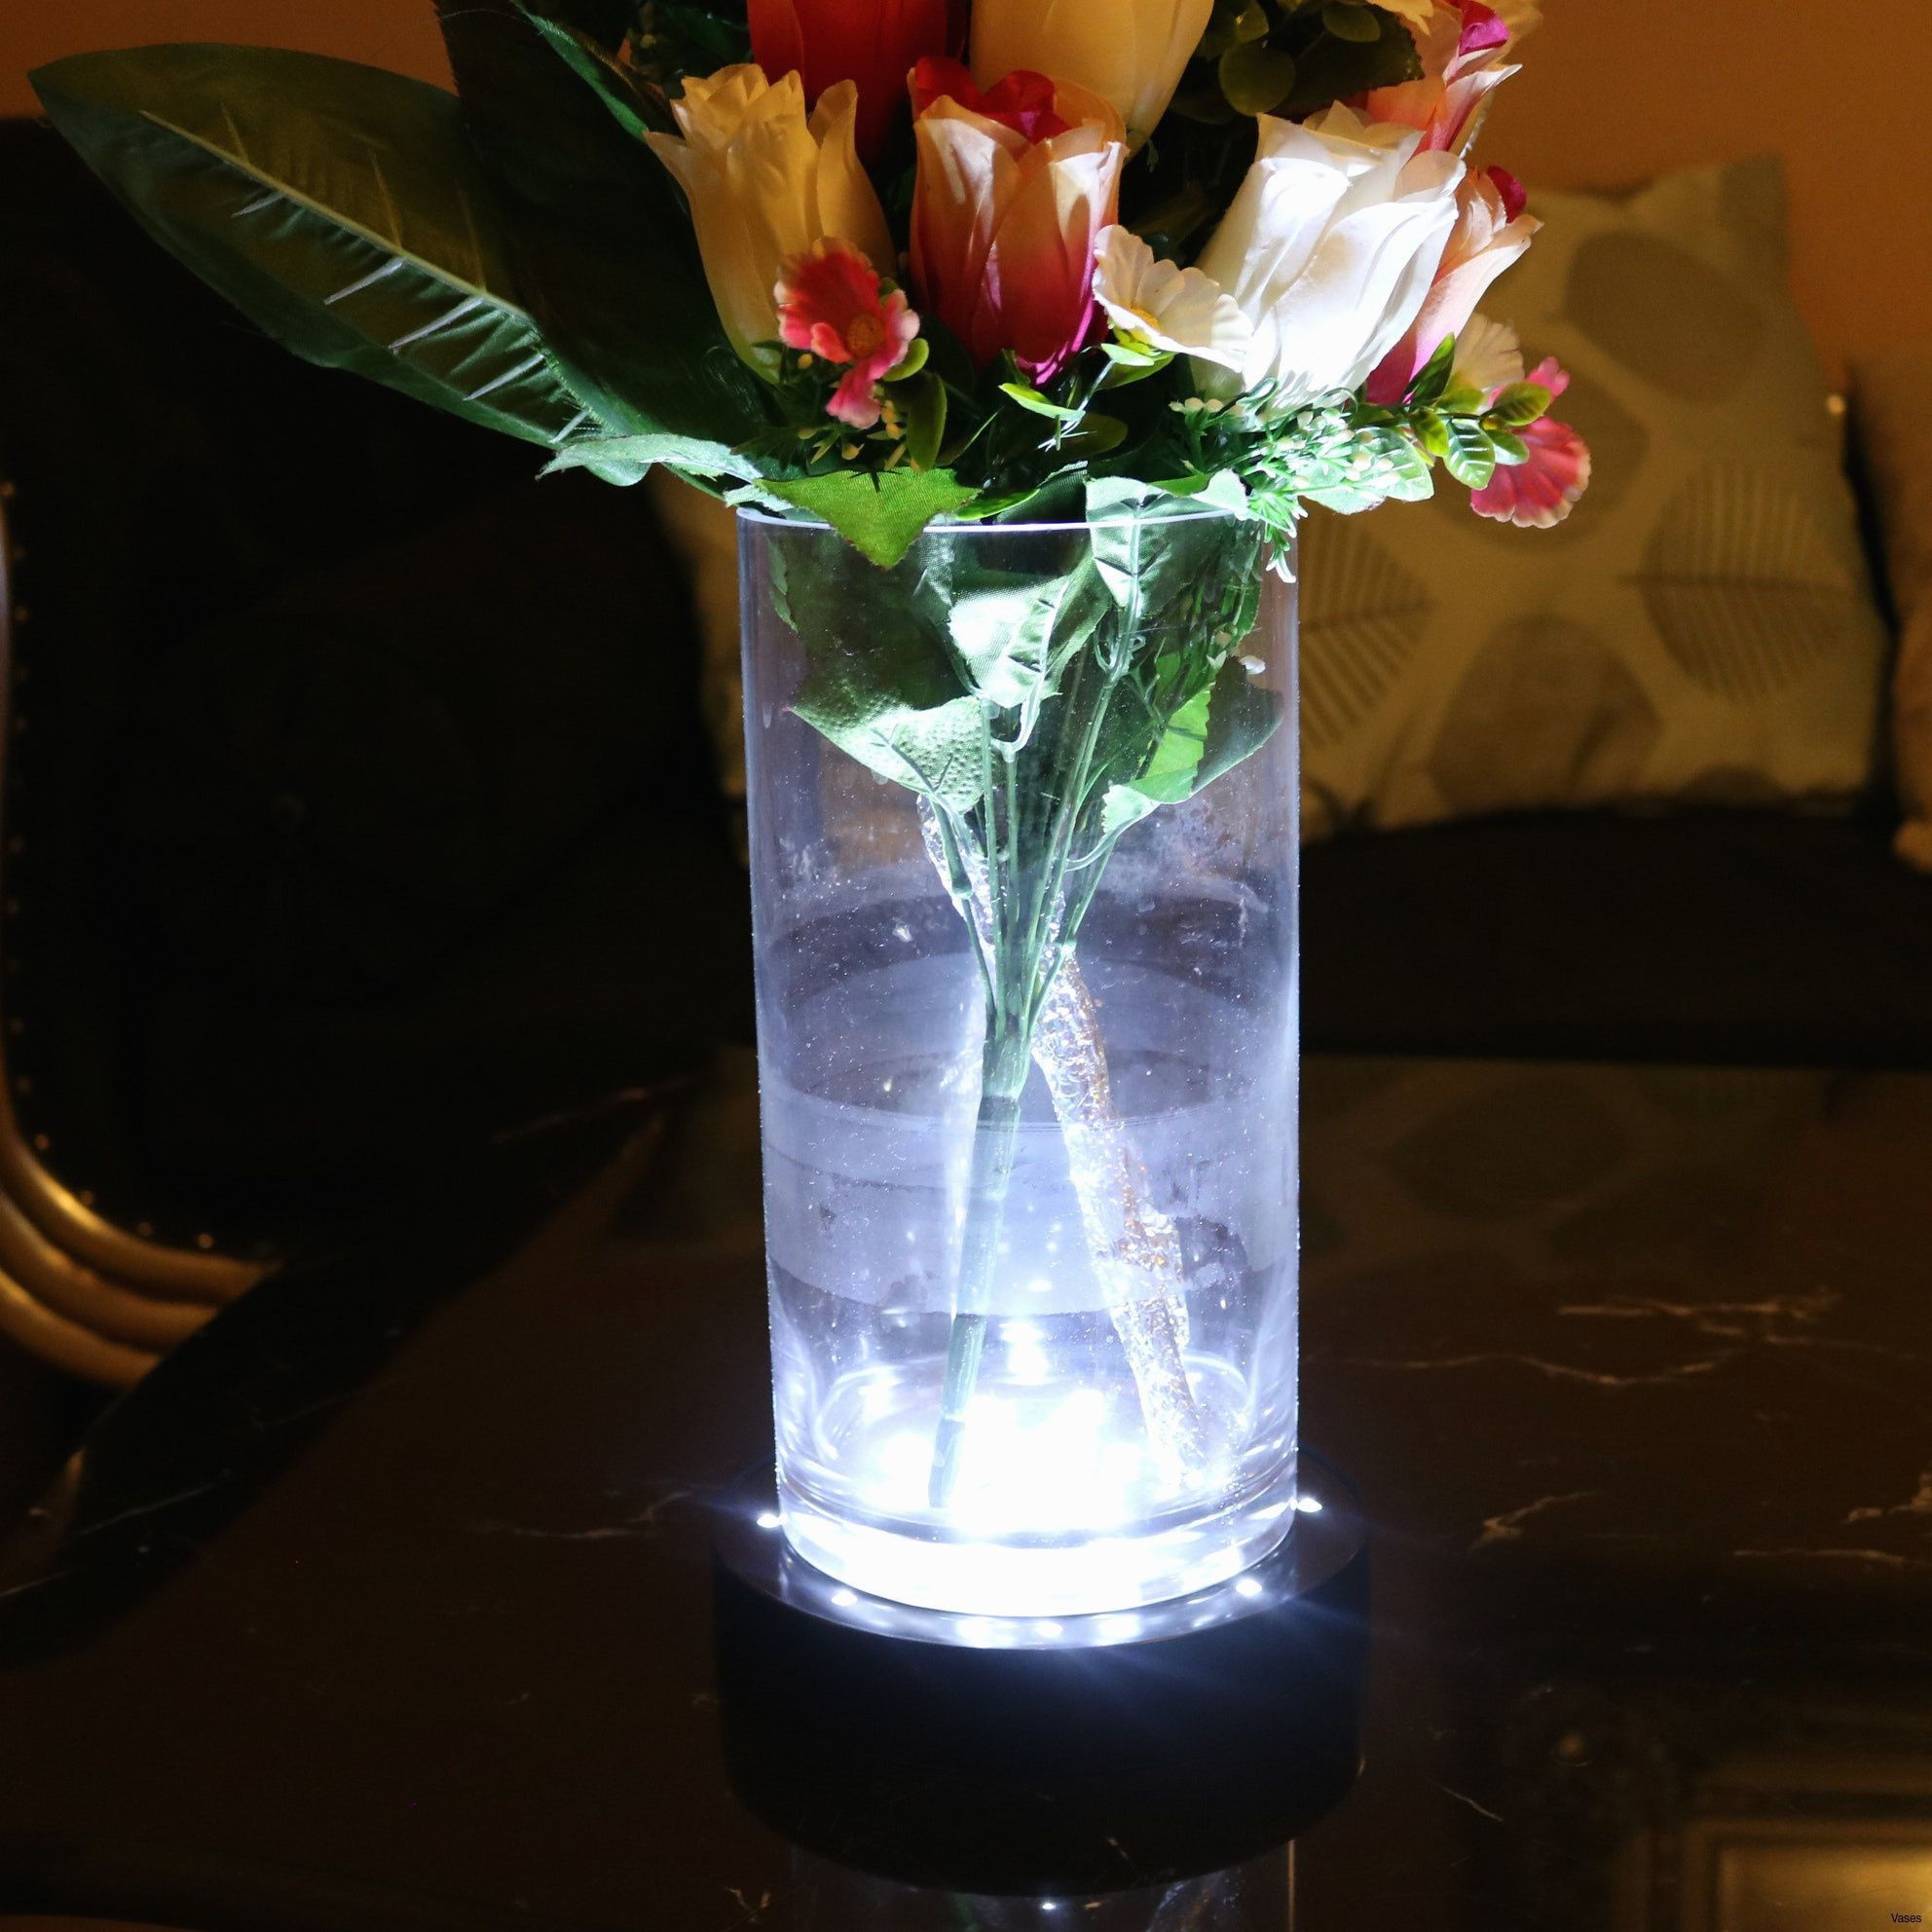 11 Ideal Used Wedding Centerpiece Vases for Sale 2021 free download used wedding centerpiece vases for sale of 24 types of vases for flowers the weekly world throughout 7 elegant wedding bouquet holder for silk flowers pics